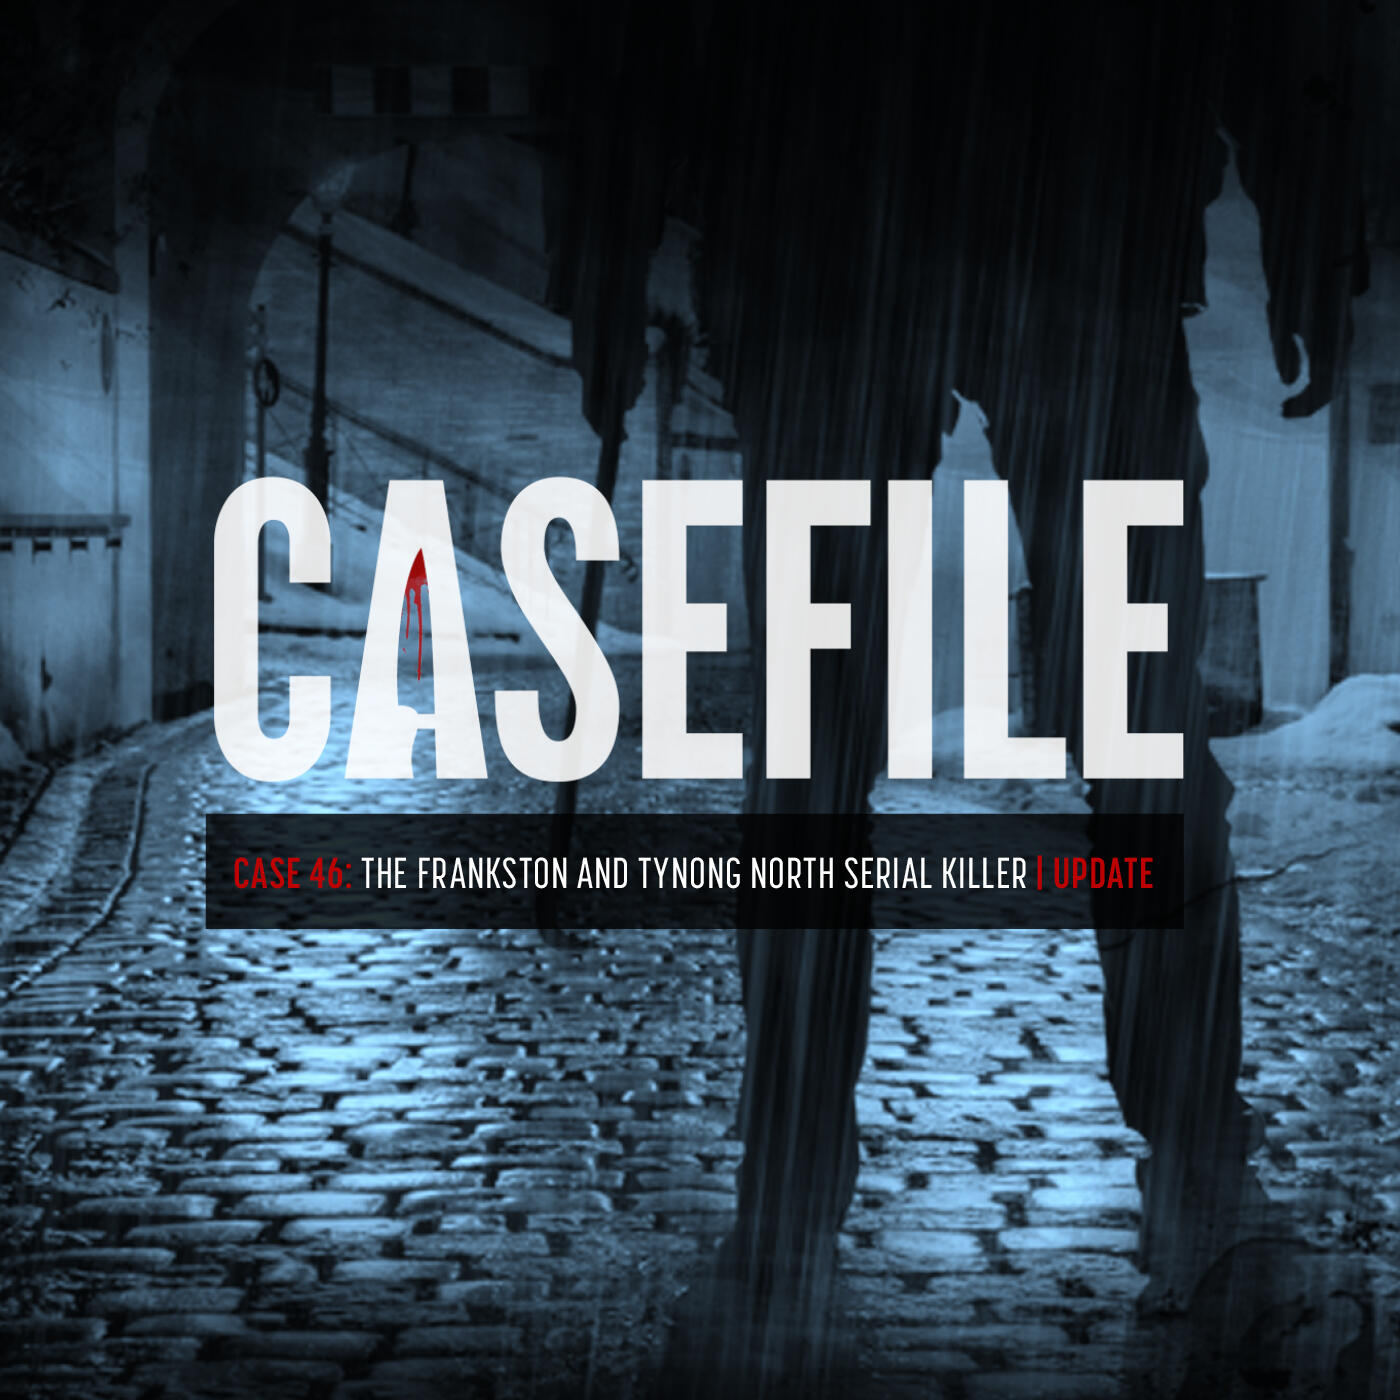 Case 46: The Frankston and Tynong North Serial Killer | Update